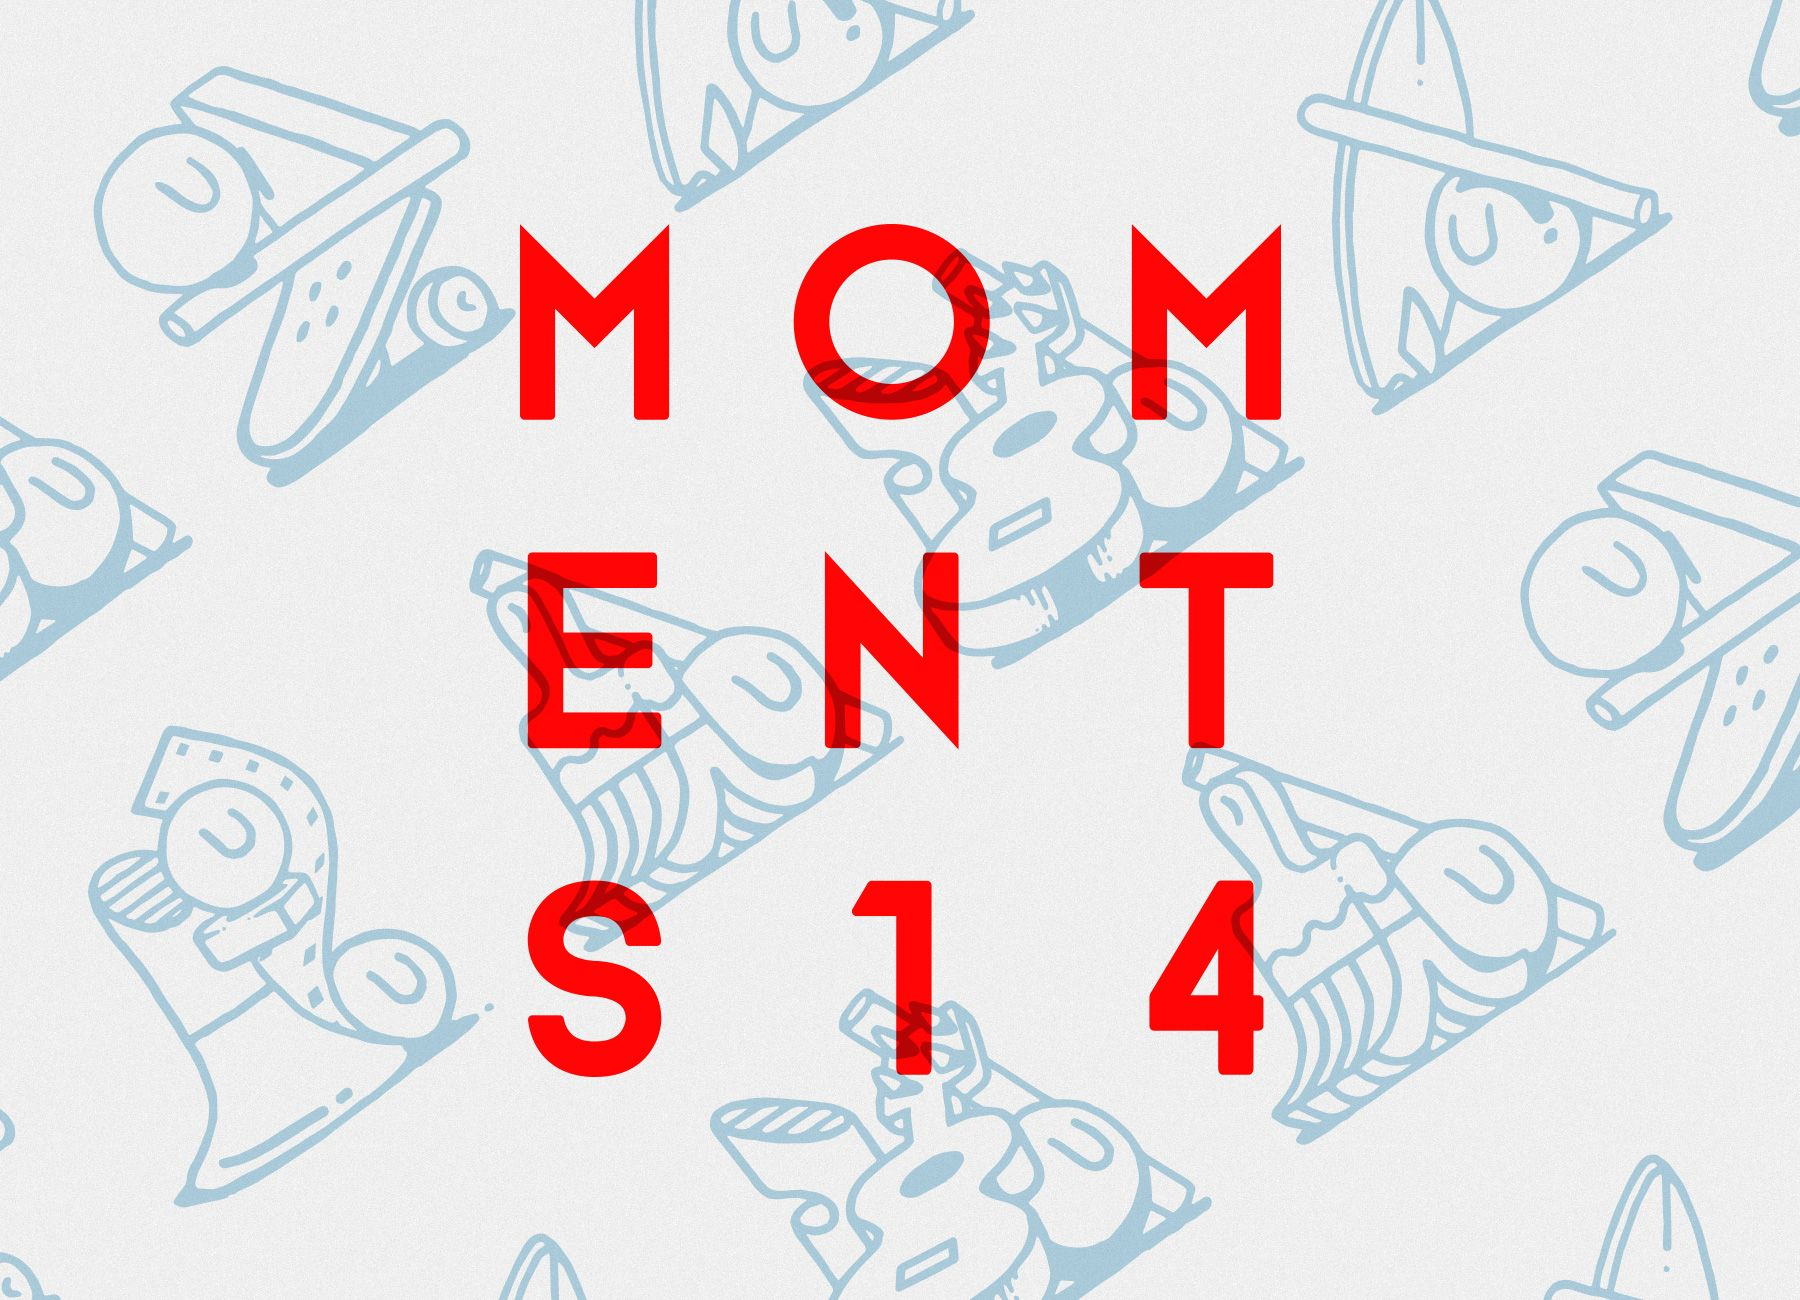 Cristian Ordonez Moments Festival 2014 Graphic Identity Branding Design Contemporary Photography Color Photography